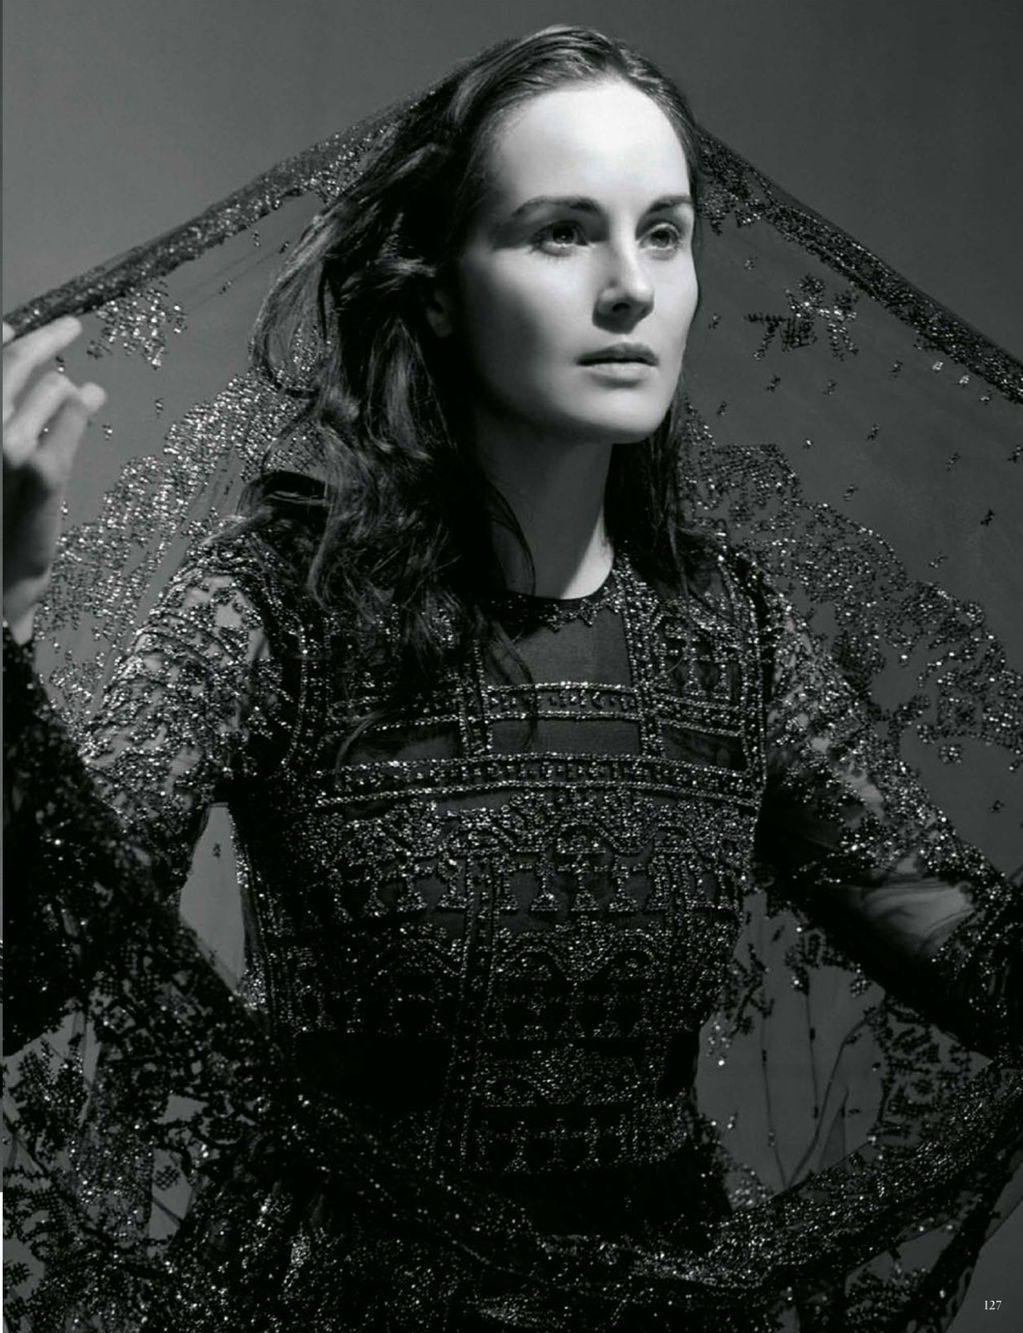 Michelle Dockery photographed by Bruce Weber for Vogue Germany, January 2013